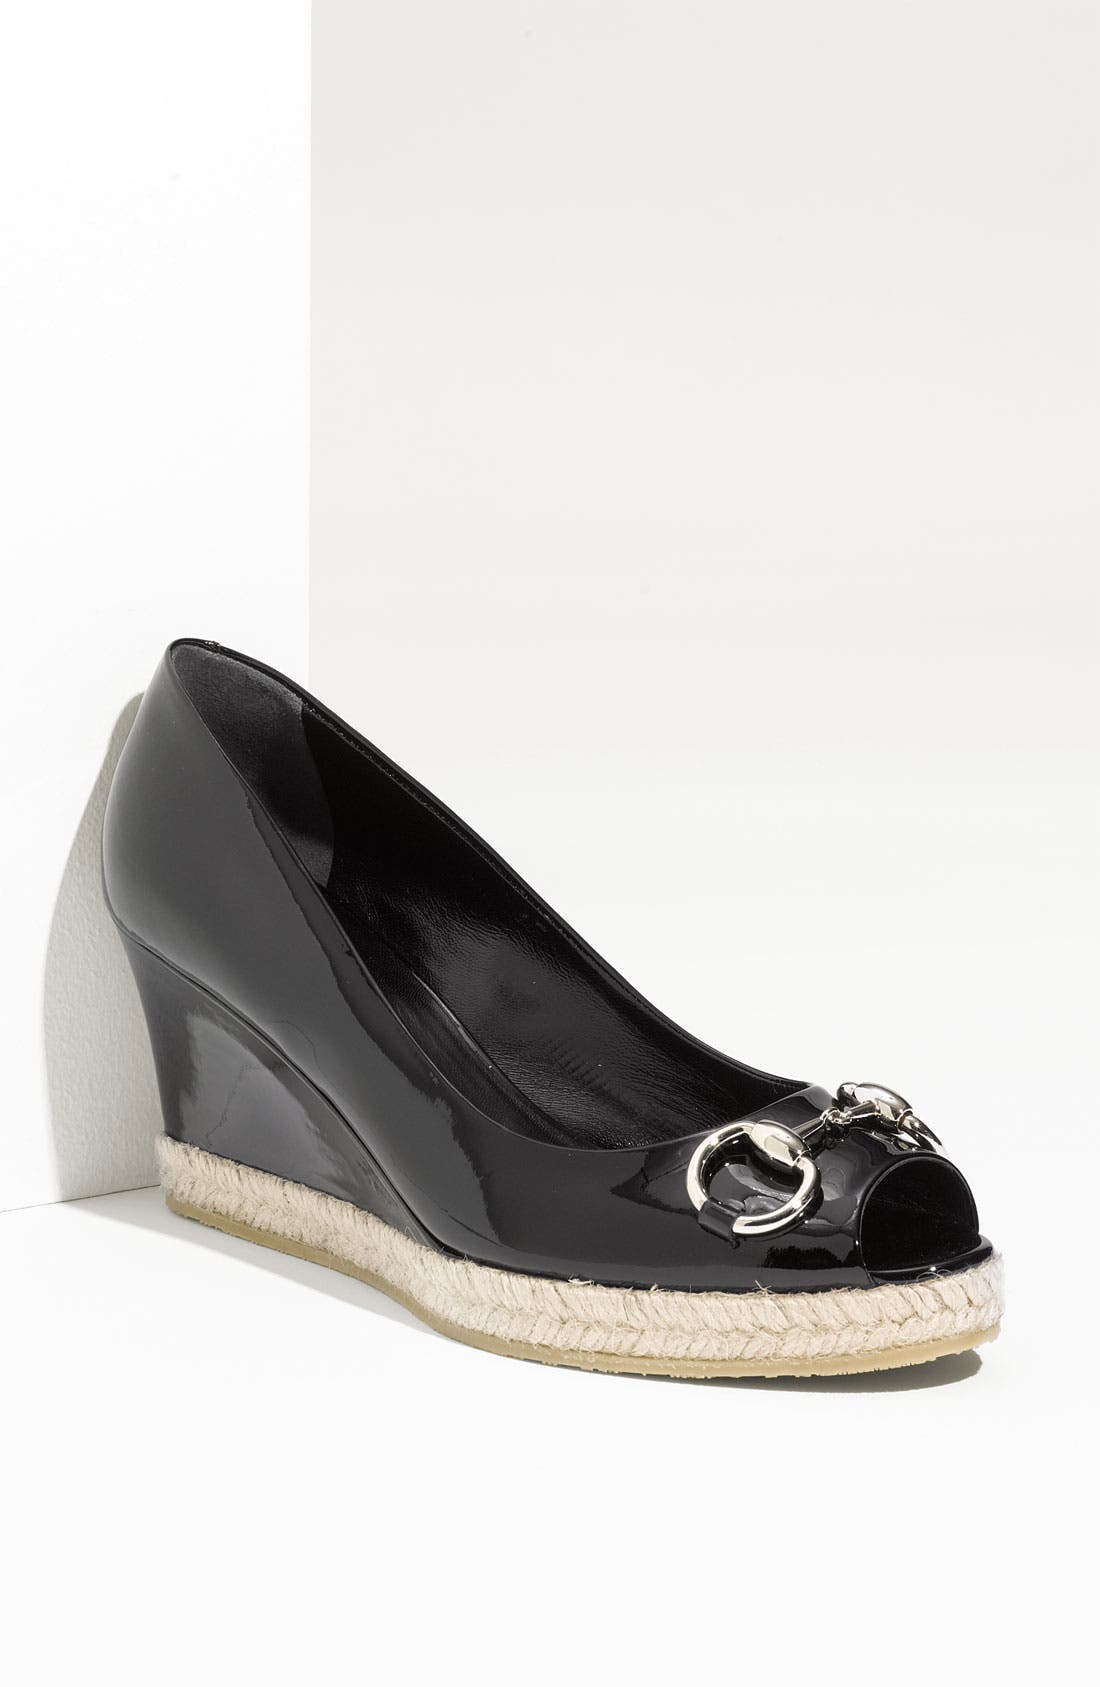 Alternate Image 1 Selected - Gucci Patent Leather Wedge Pump